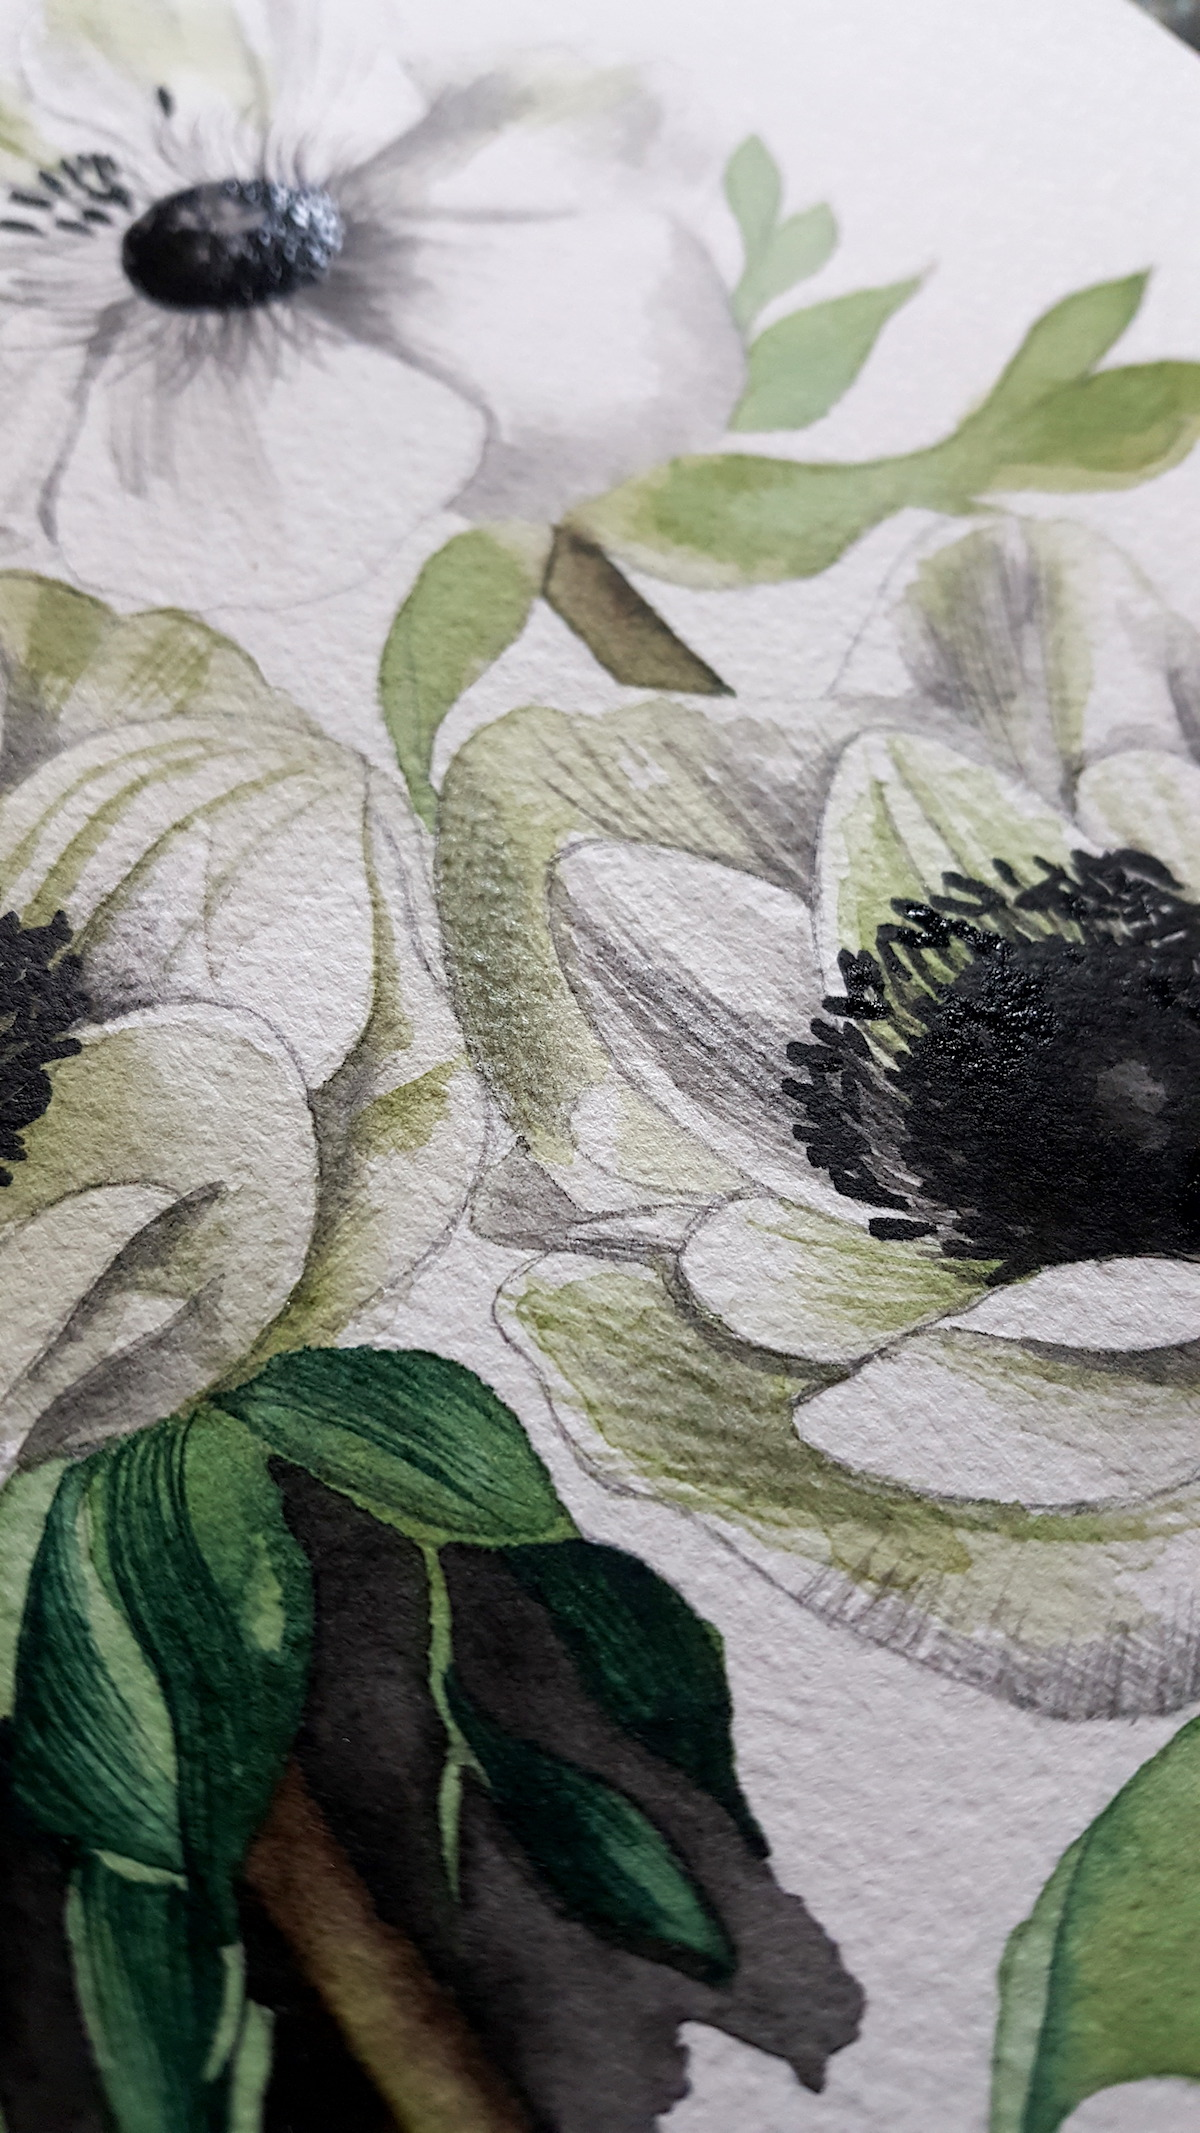 Working on the black detail of anemone flower's centre